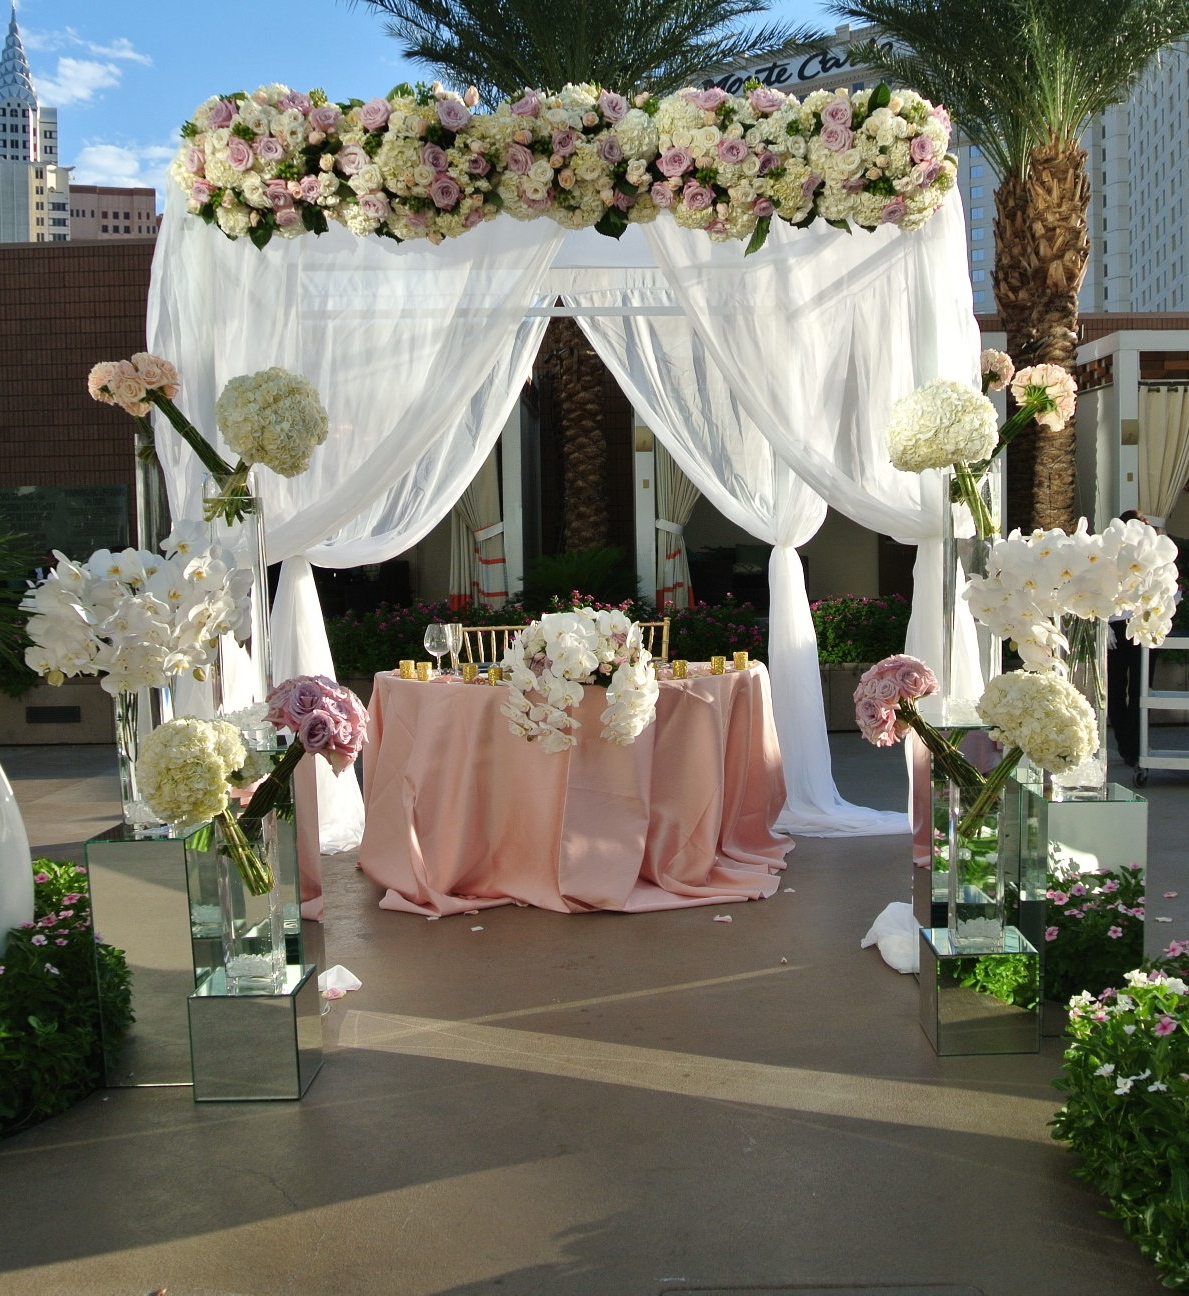 The ceremony gazebo was transformed into a sweetheart table and lovers retreat for the bride and groom, allowing them to spend some time alone together during dinner and the reception.   Las Vegas Wedding Planner:    Andrea Eppolito Events    |  Wedding Venue:    Mandarin Oriental Las Vegas    |  Decor:    Naakiti Floral